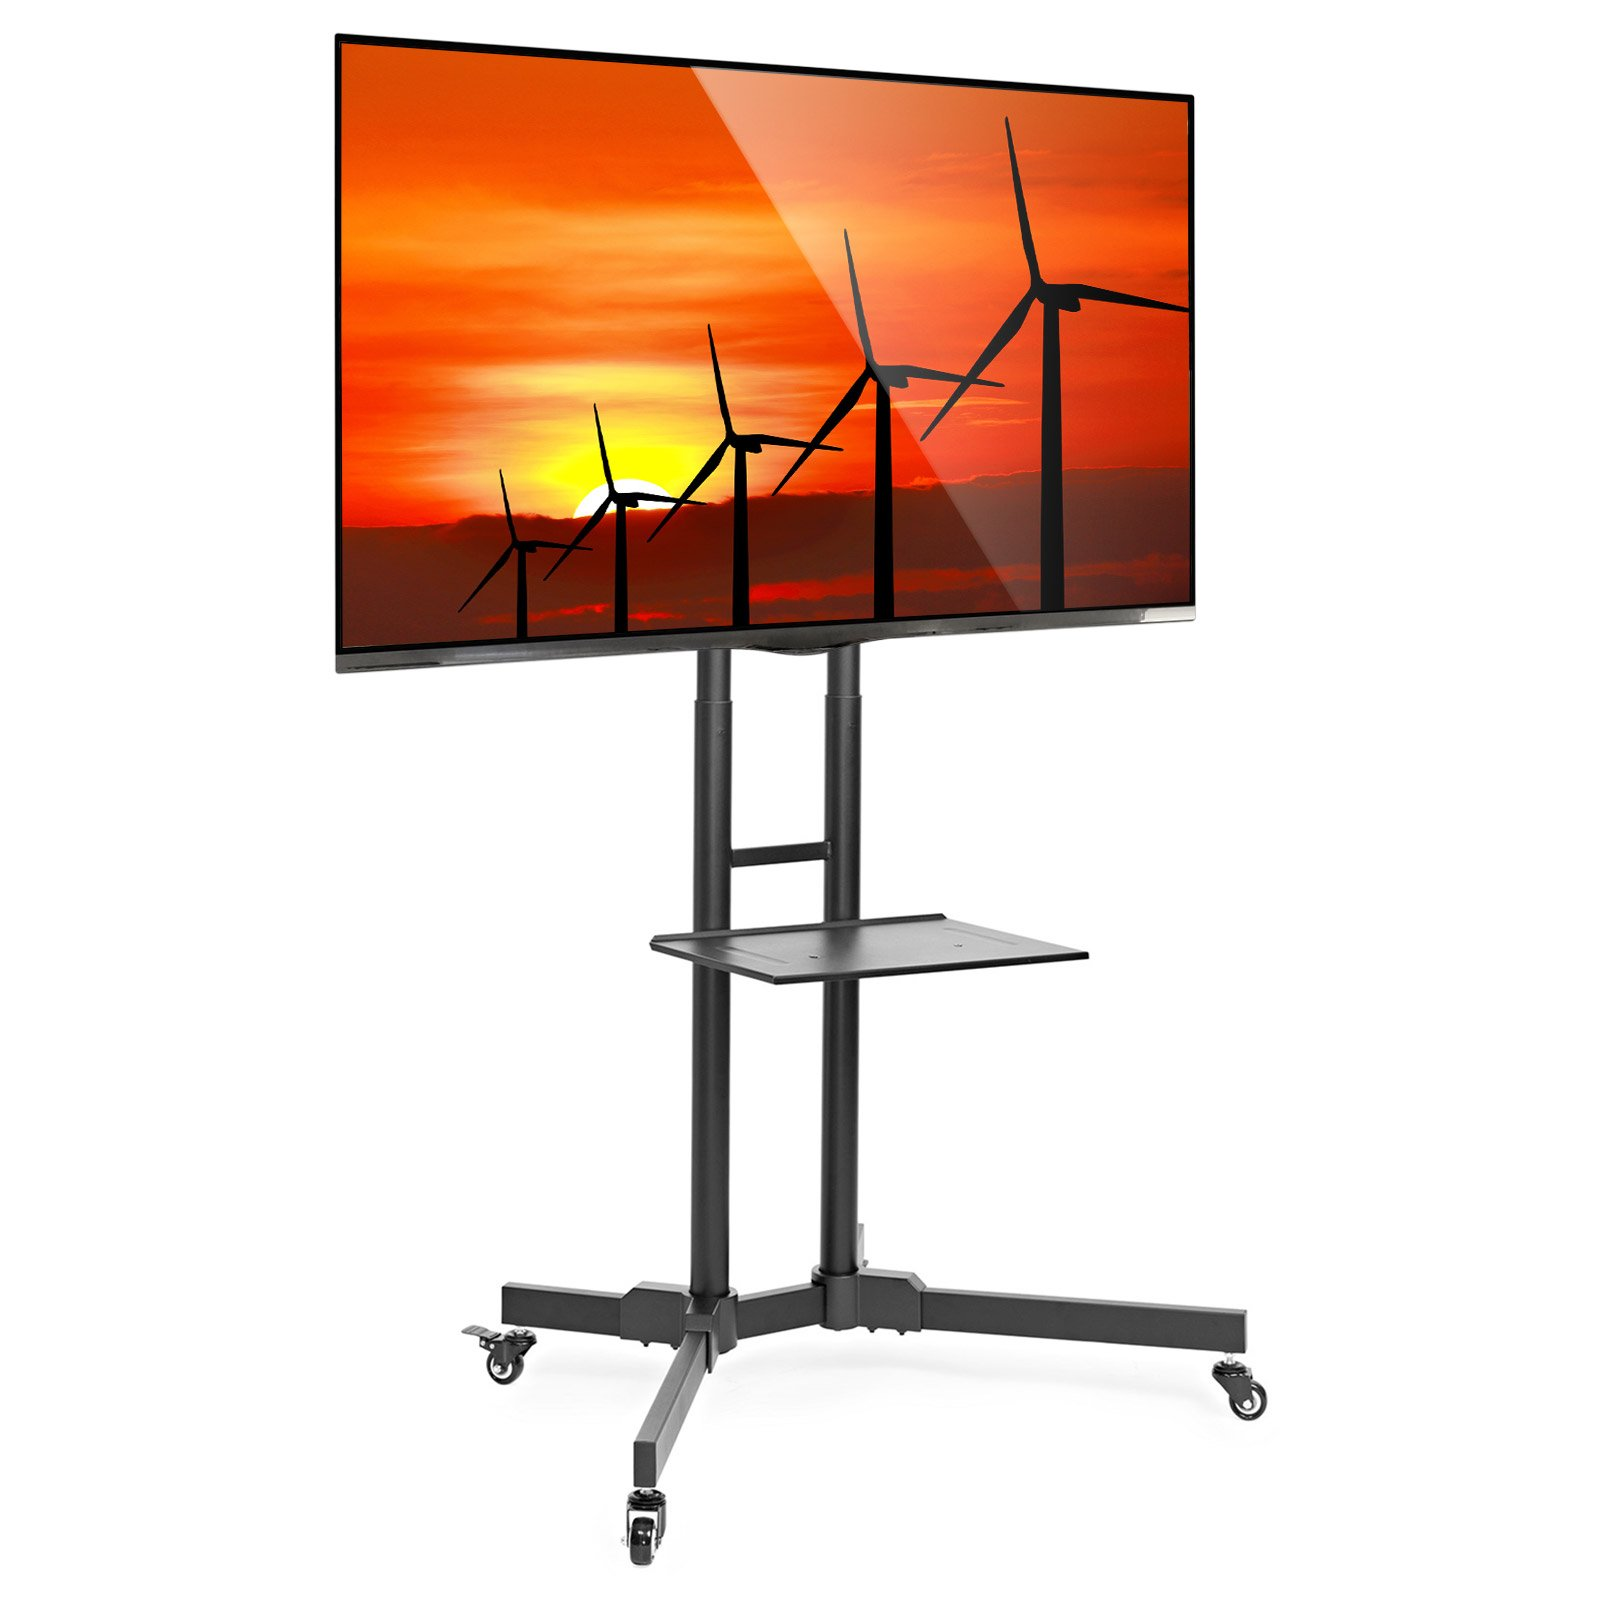 Mount Factory Rolling TV Stand Mobile TV Cart for 32-65 inch Plasma Screen, LED, LCD, OLED, Curved TV's - Mount Universal with Wheels by Mount Factory